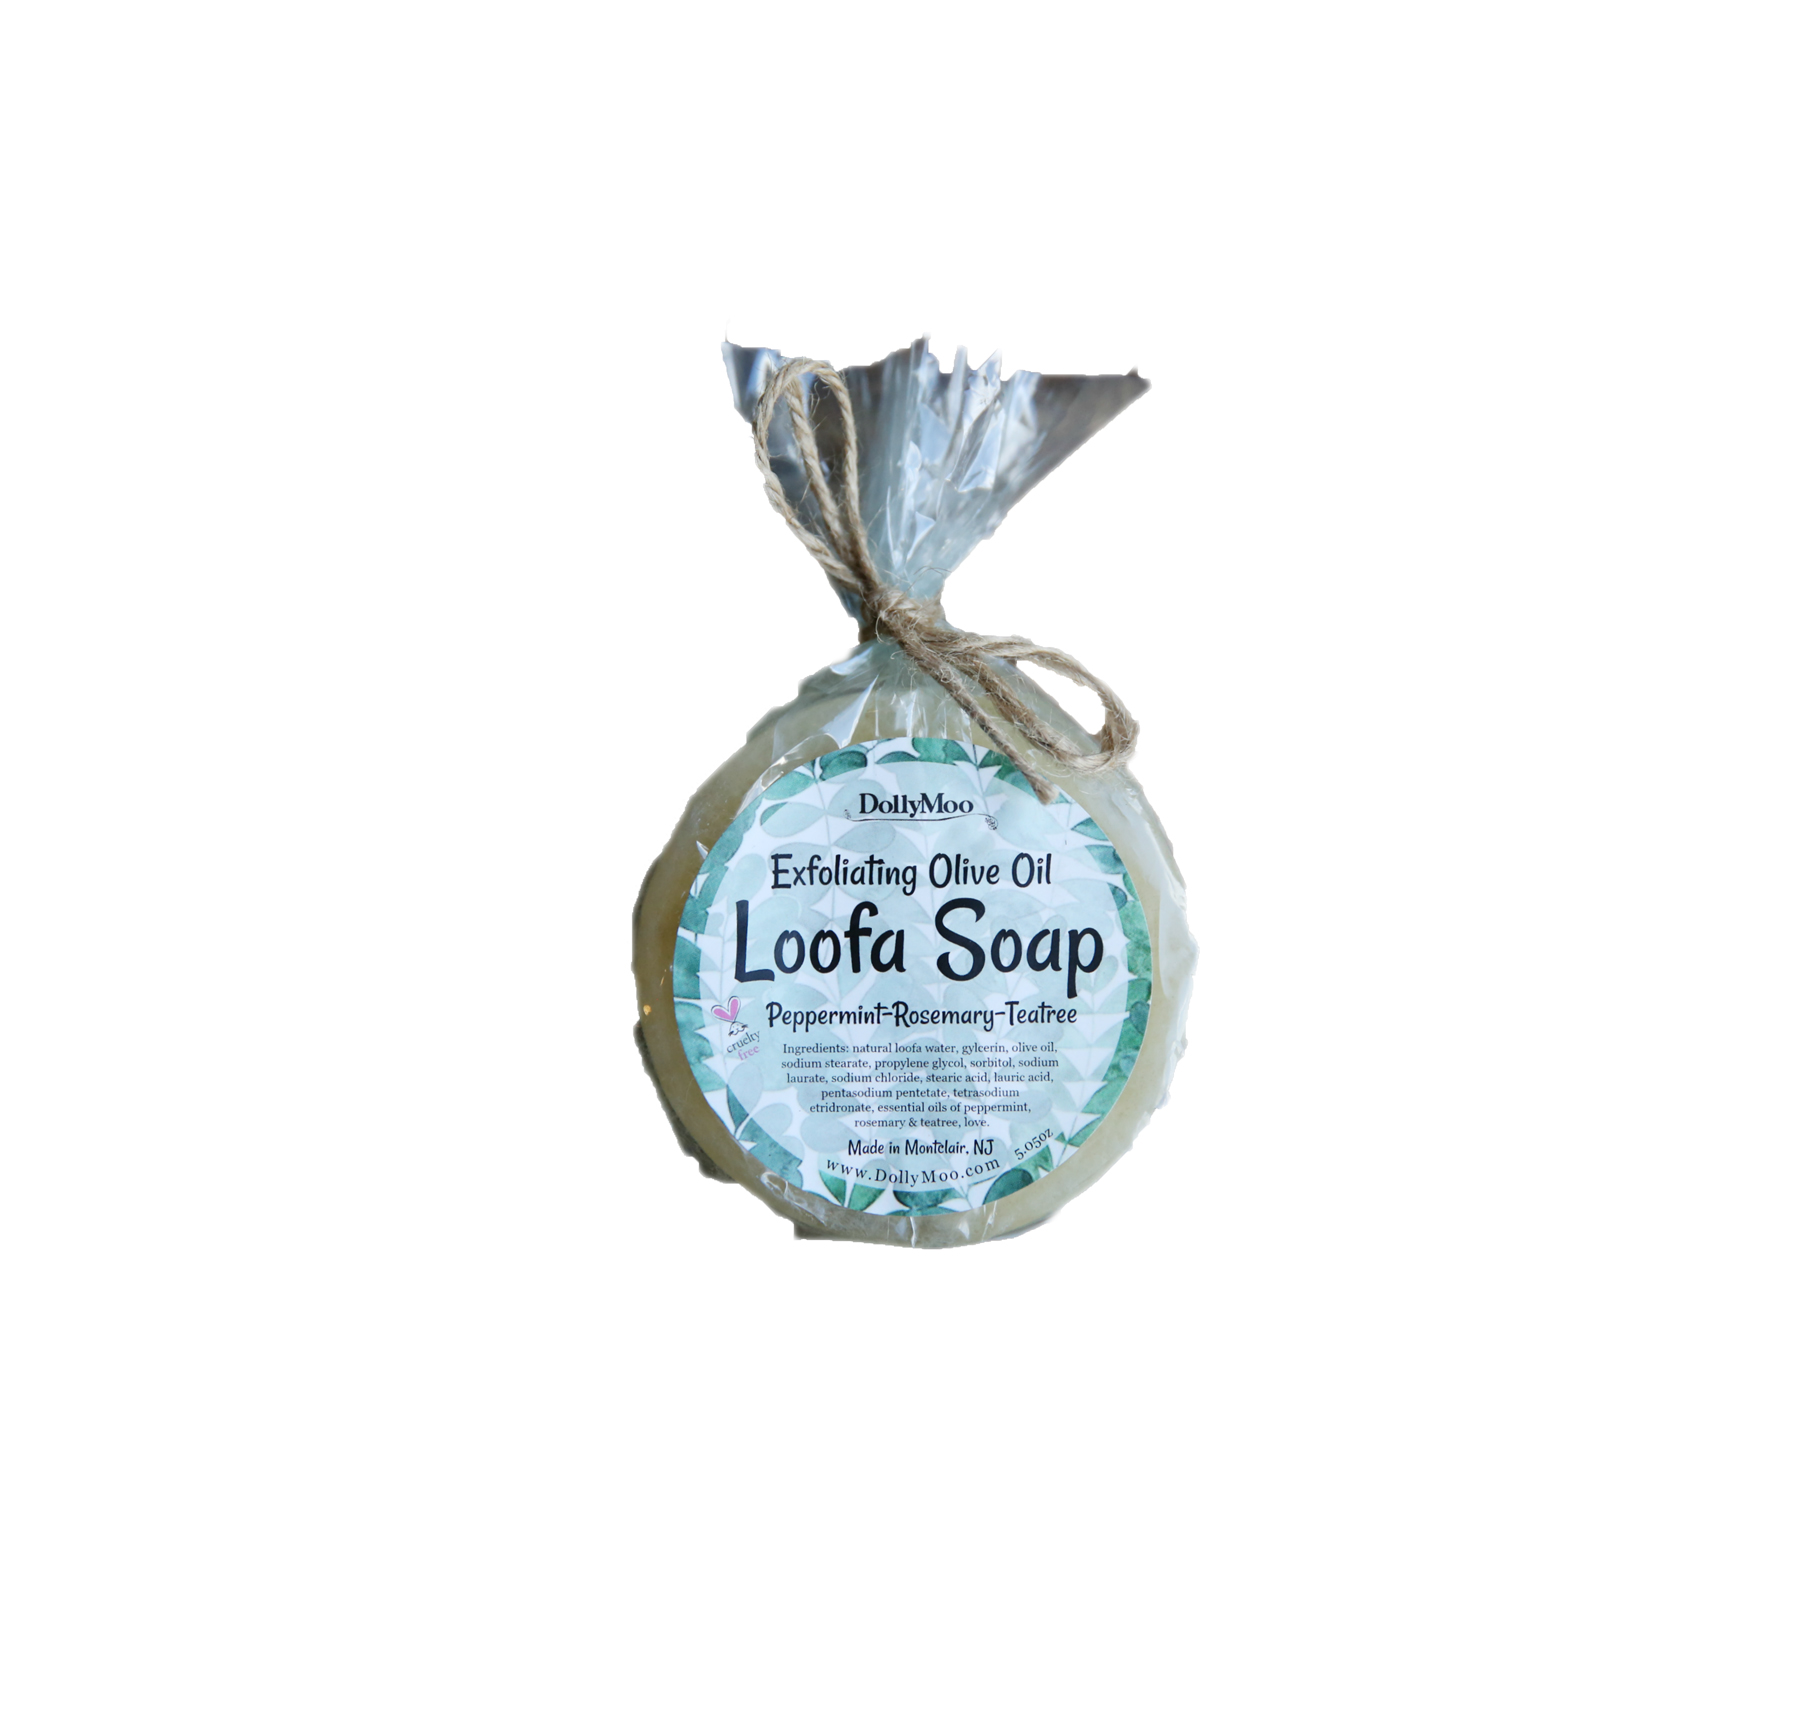 Gym bag essentials and luxuries - DollyMoo Peppermint, Rosemary, Teatree Loofa Soap